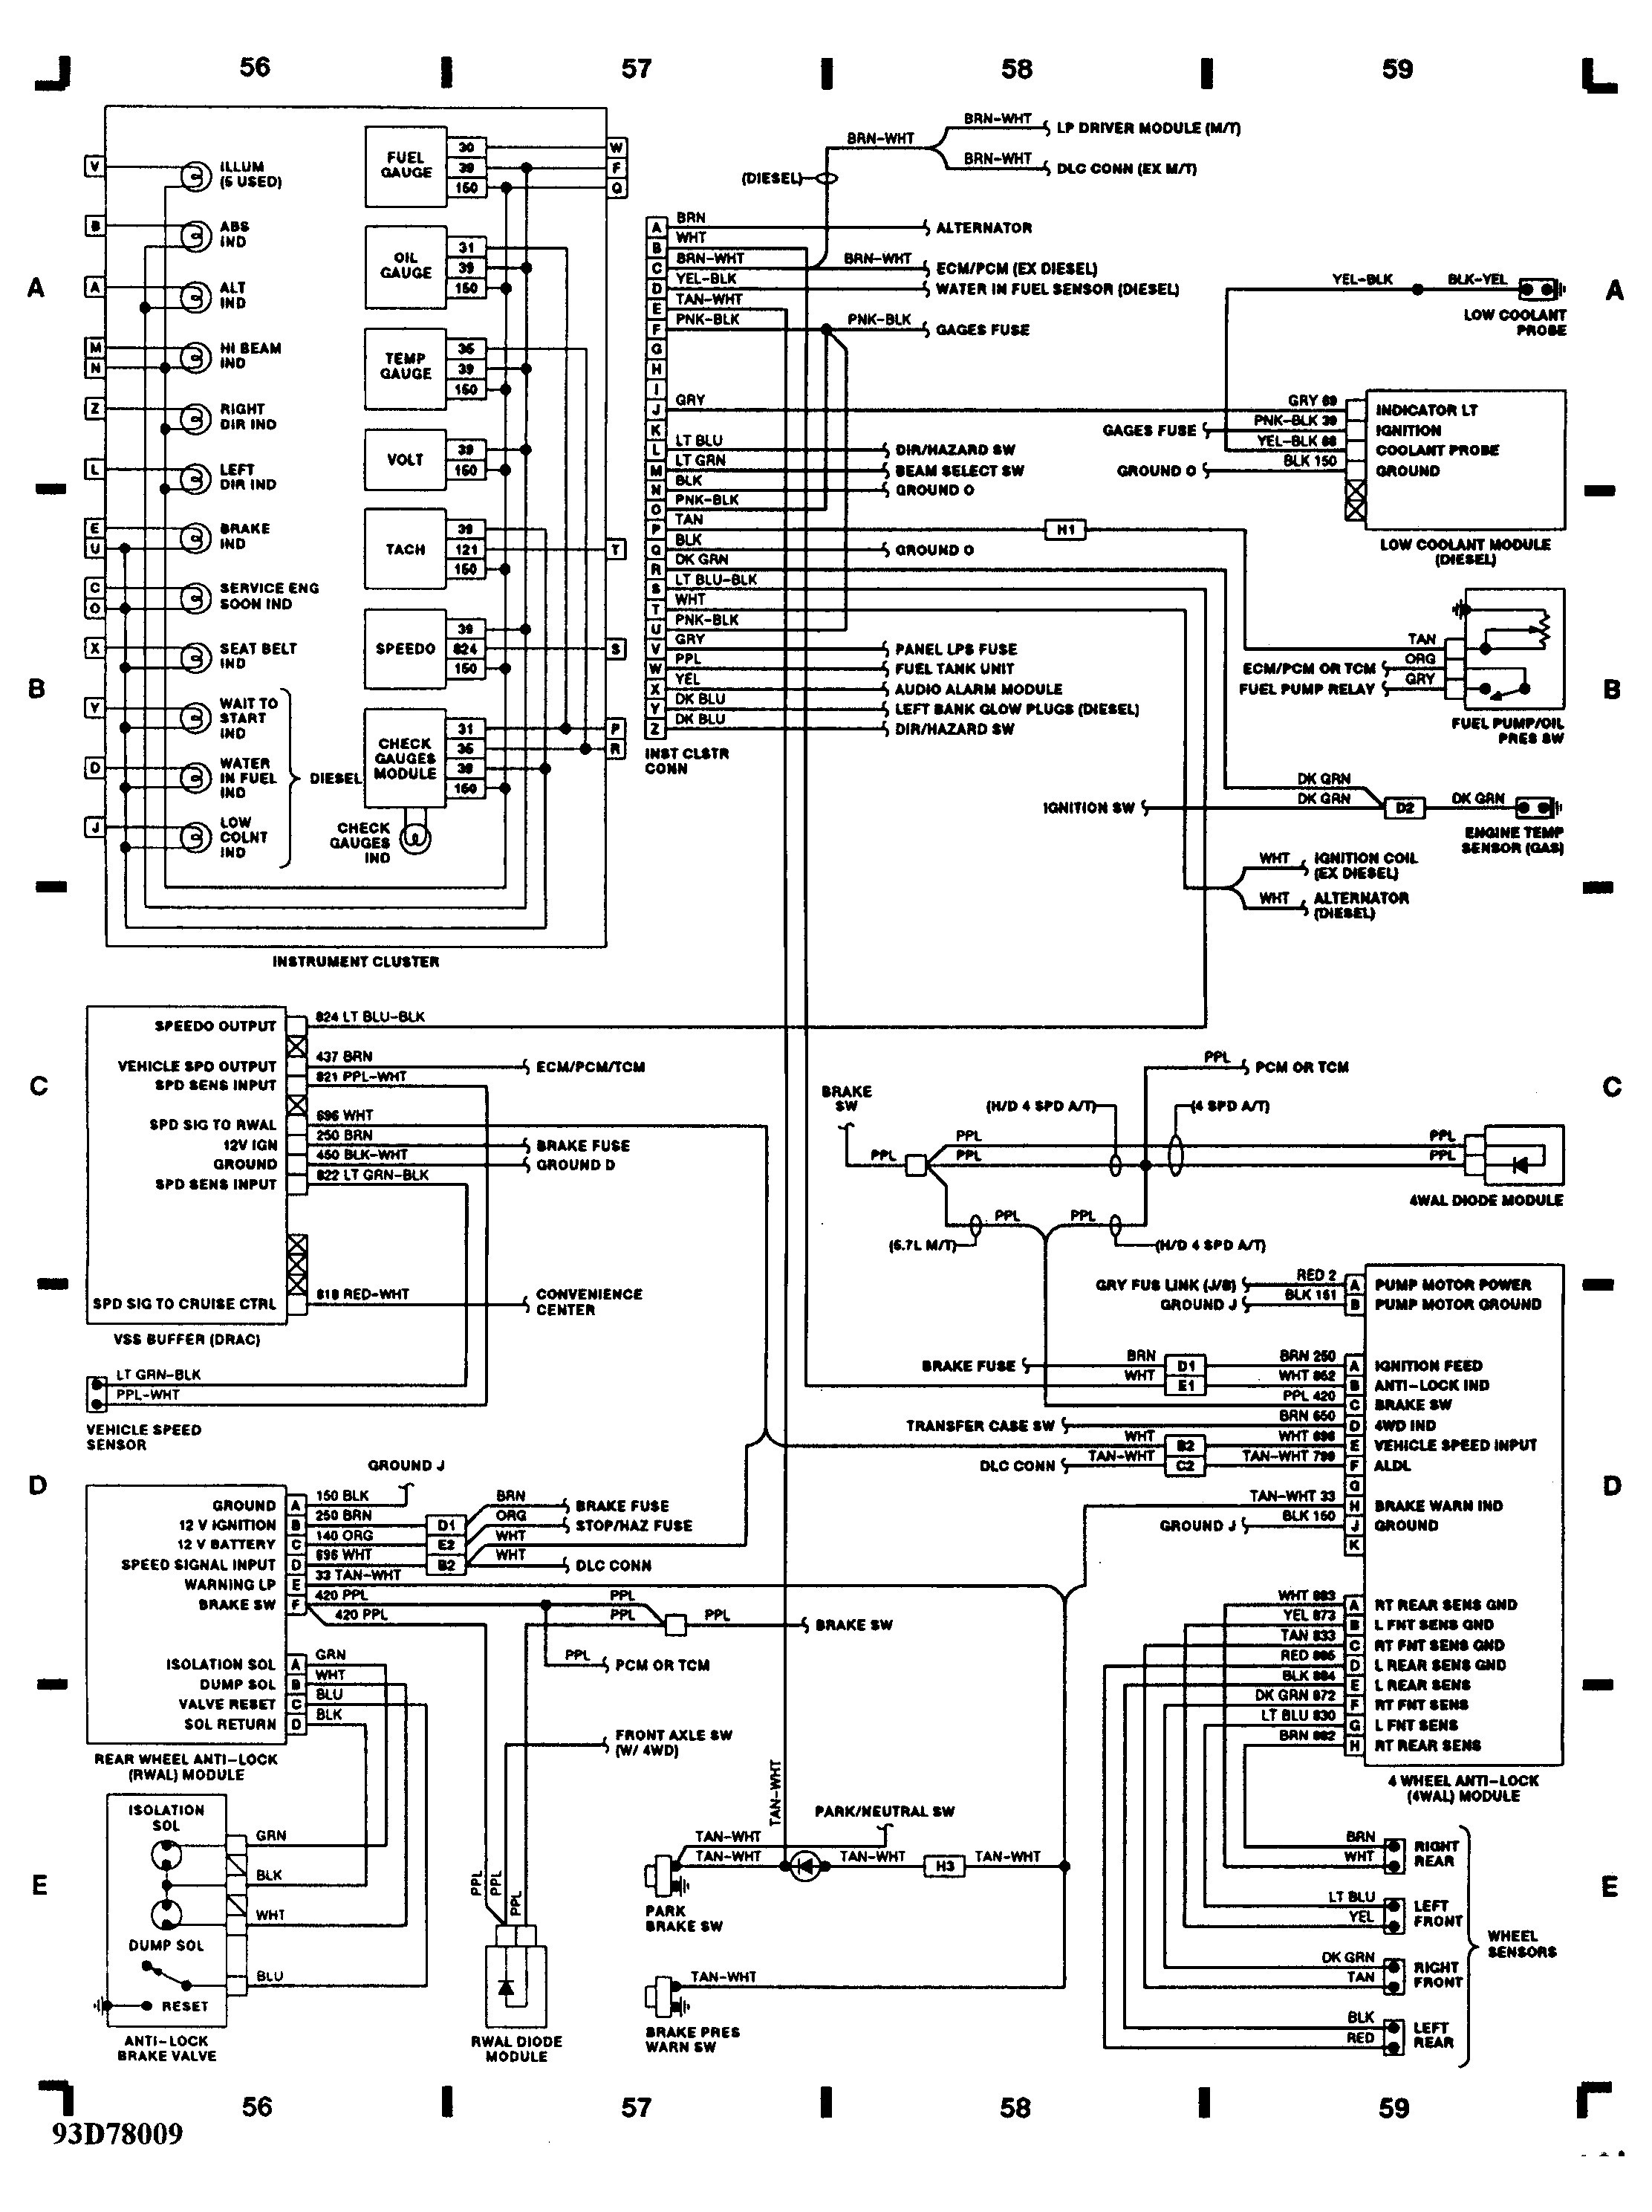 1998 Chevy S10 Engine Diagram 5 7 Vortec Wiring Diagram 4 3l Vortec Engine  Diagram Wiring